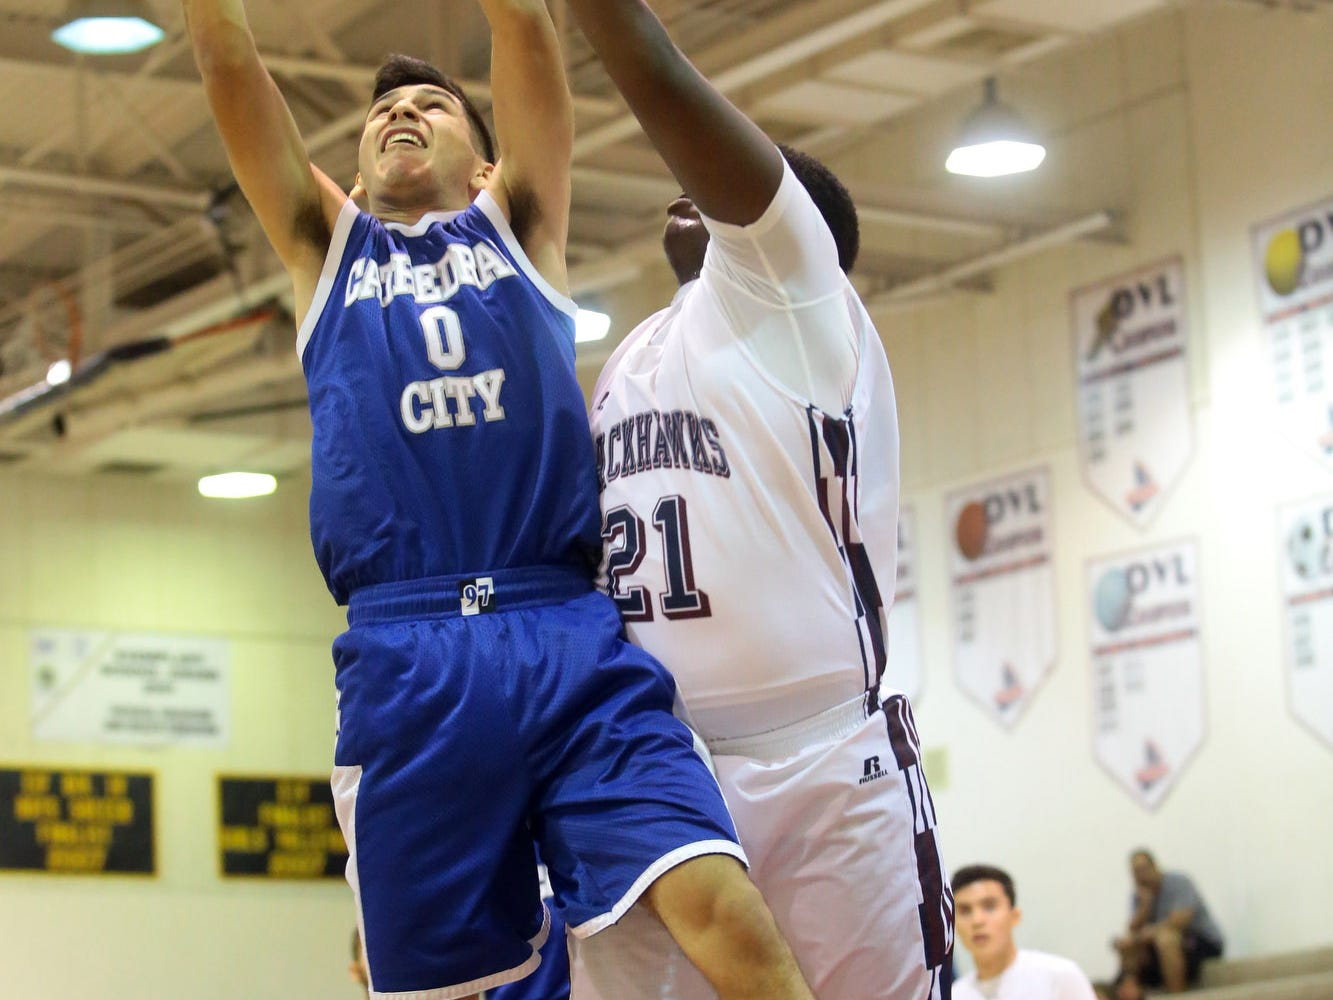 Nick Jimenez of Cathedral City (0, blue) beats La Quinta's Charles Hays (21, white) to pull down a defensive rebound on Tuesday night. La Quinta won, 74-59, and stays atop the league.